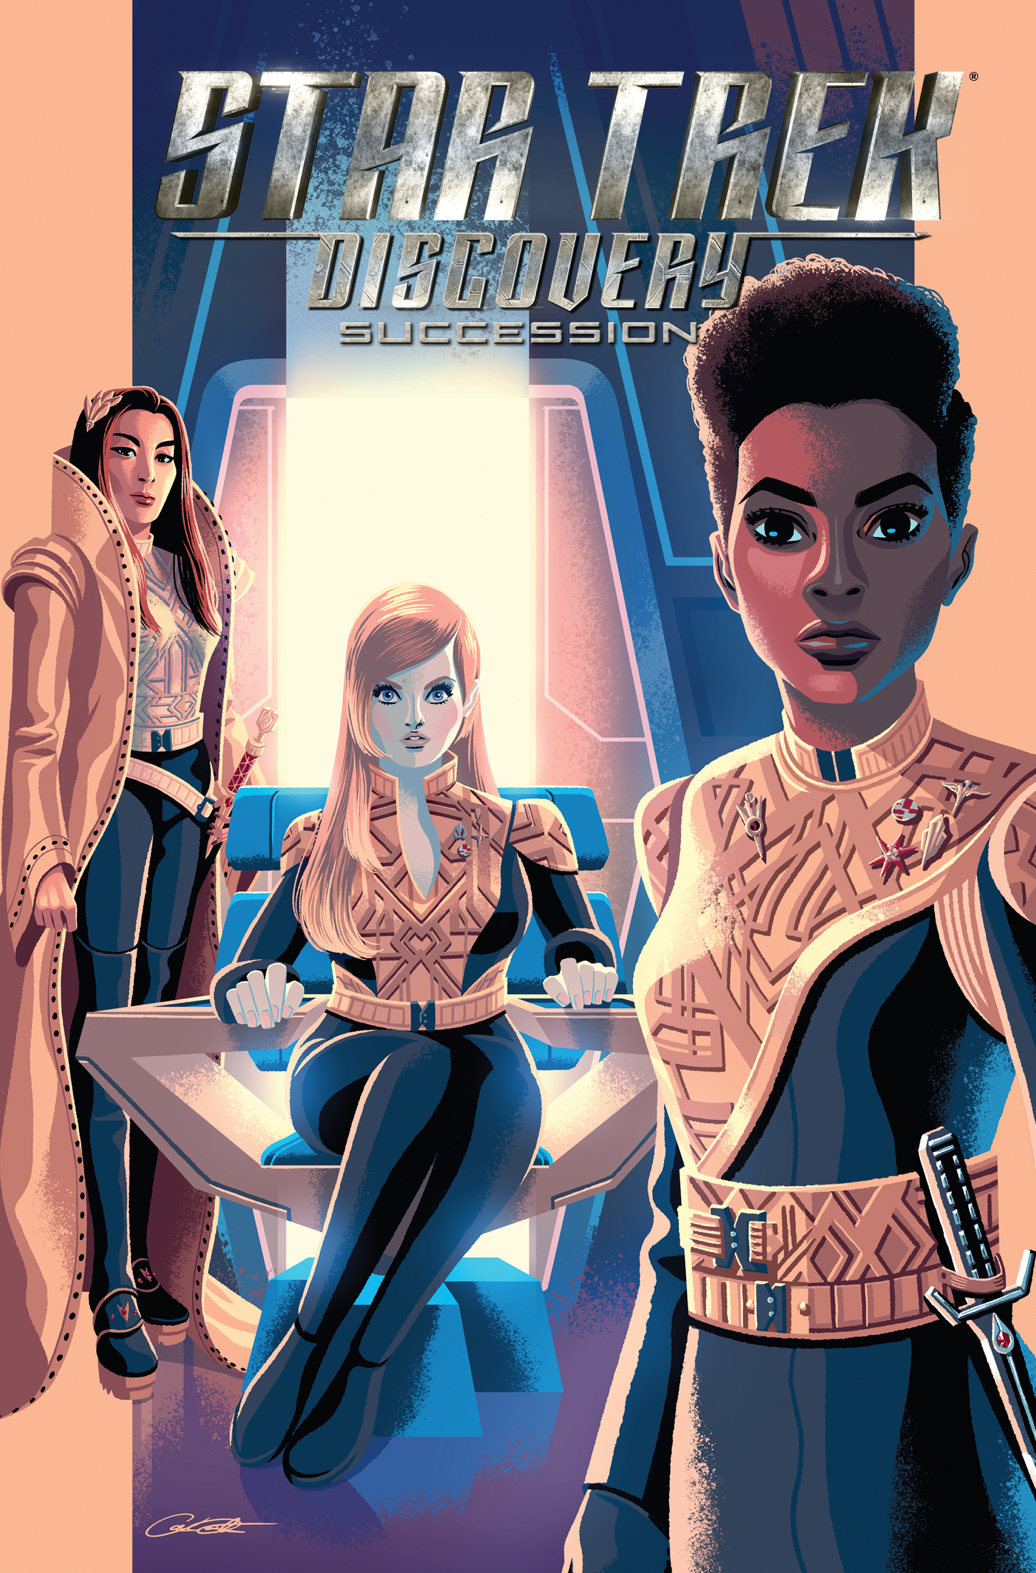 STAR TREK DISCOVERY SUCCESSION TP